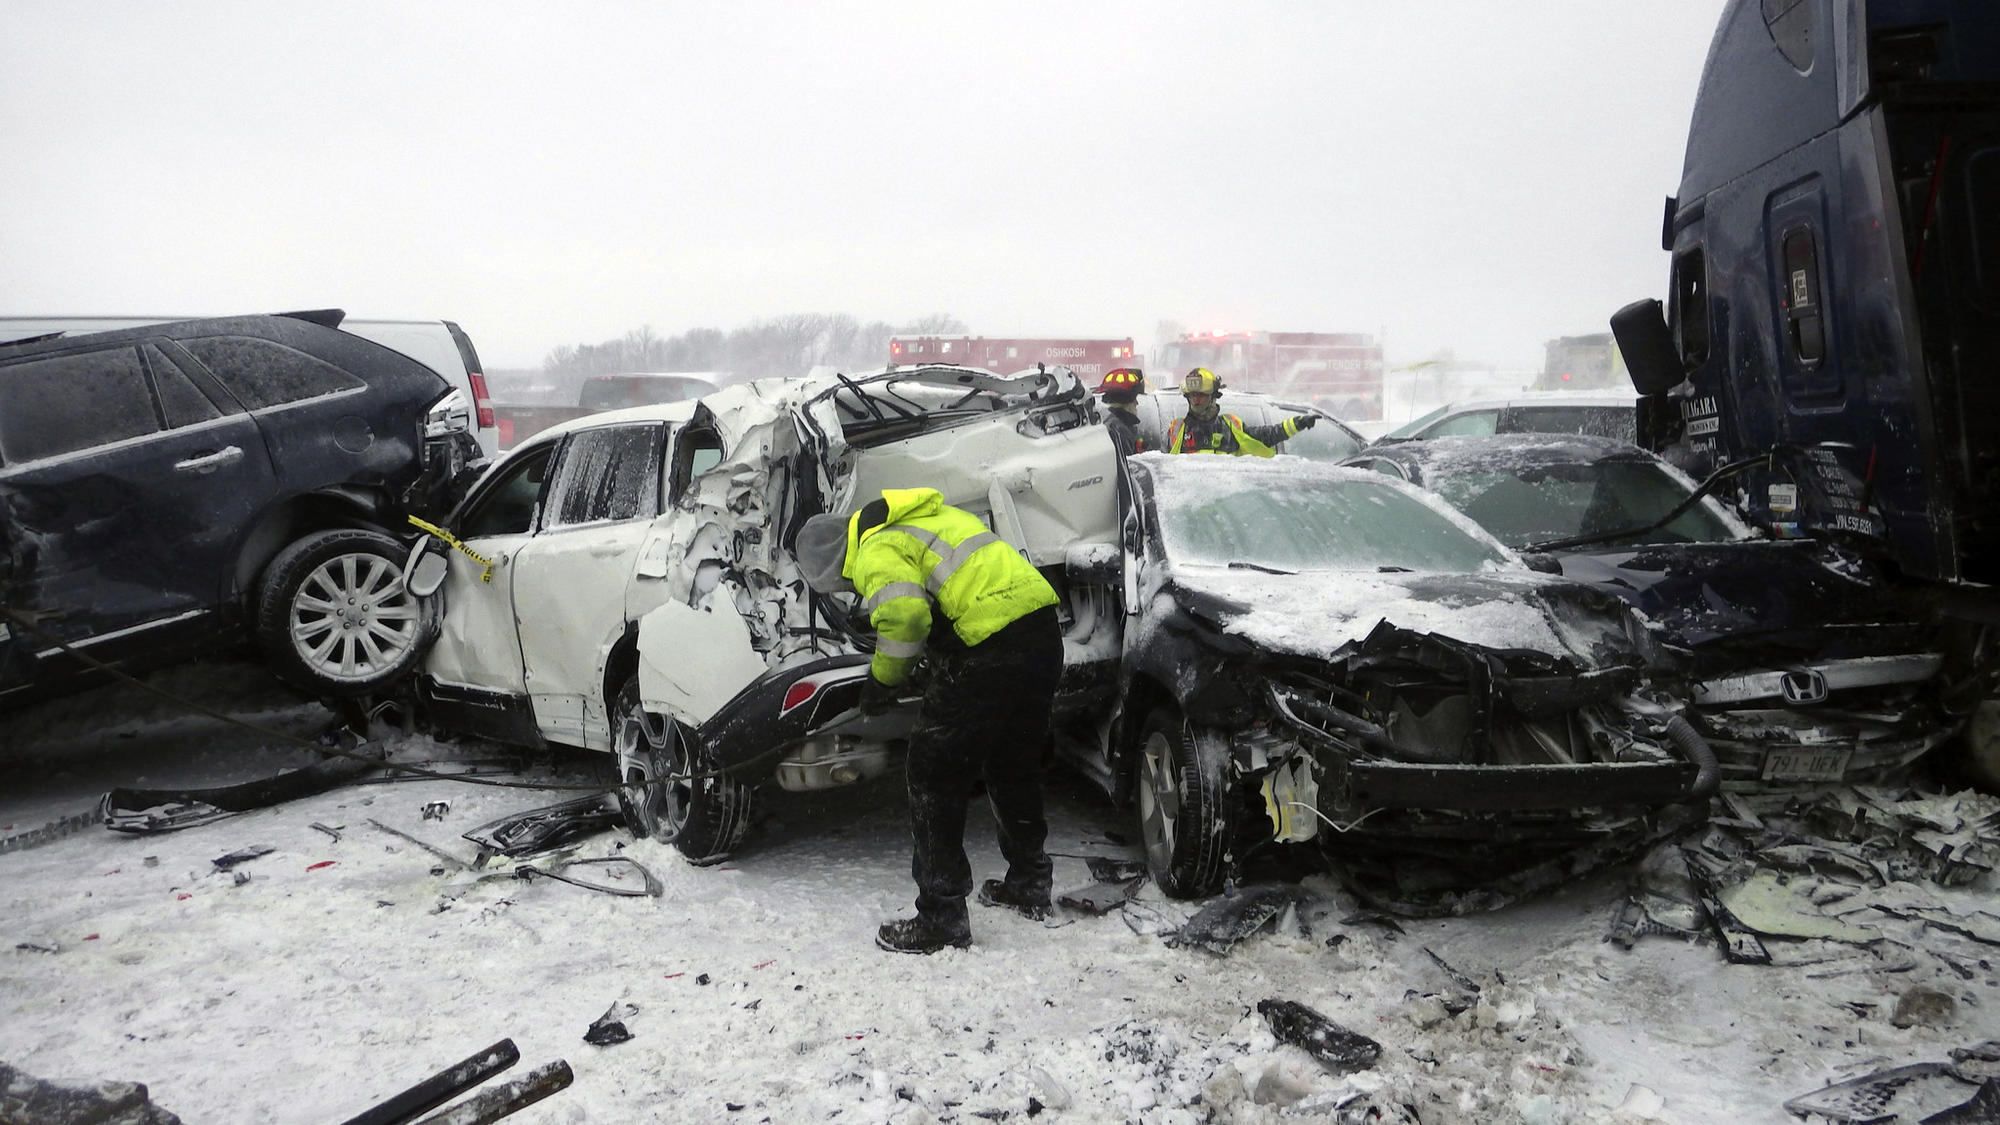 video released of massive pileup in wisconsin involving 131 cars that claimed life of teacher